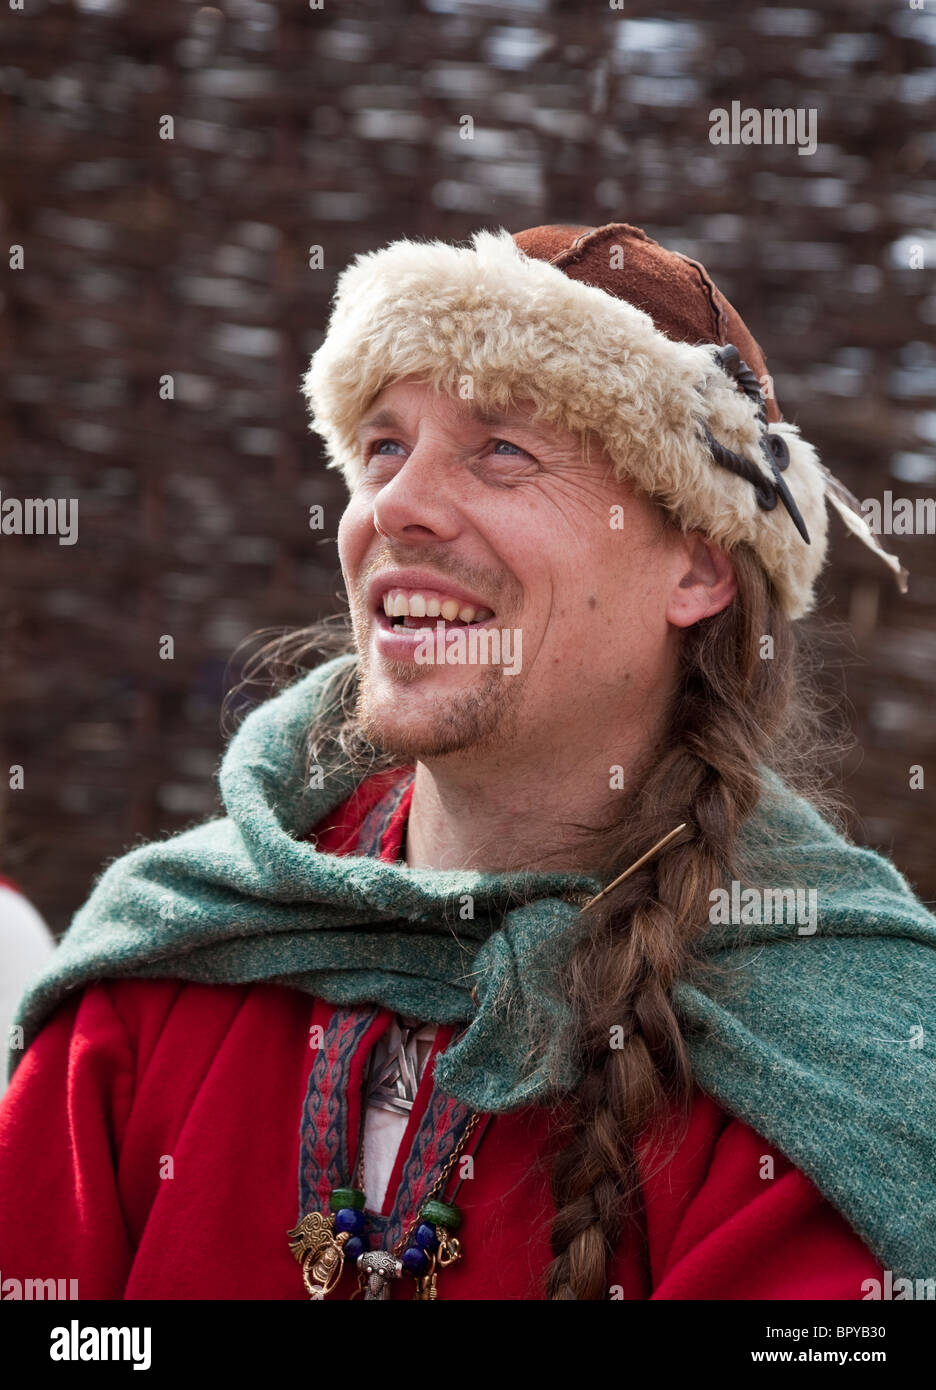 Male historical re-enactor at the Viking village as part of Largs Viking Festival, 2010. Historic clothing. - Stock Image